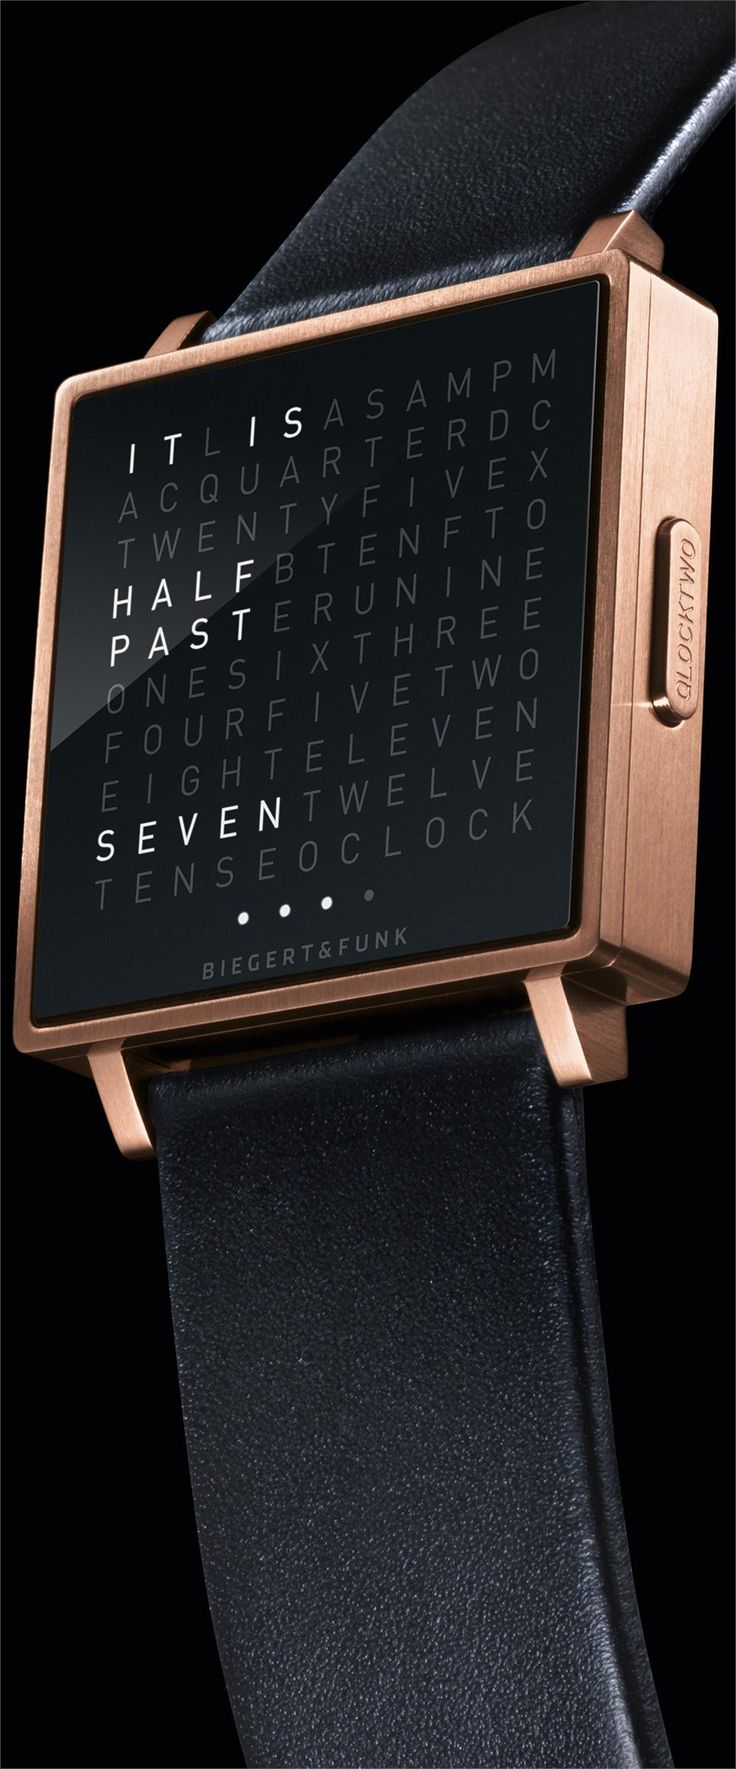 "Biegert & Funk ""QLOCKTWO W"" wristwatch, by Andreas Funk, 35x35mm."